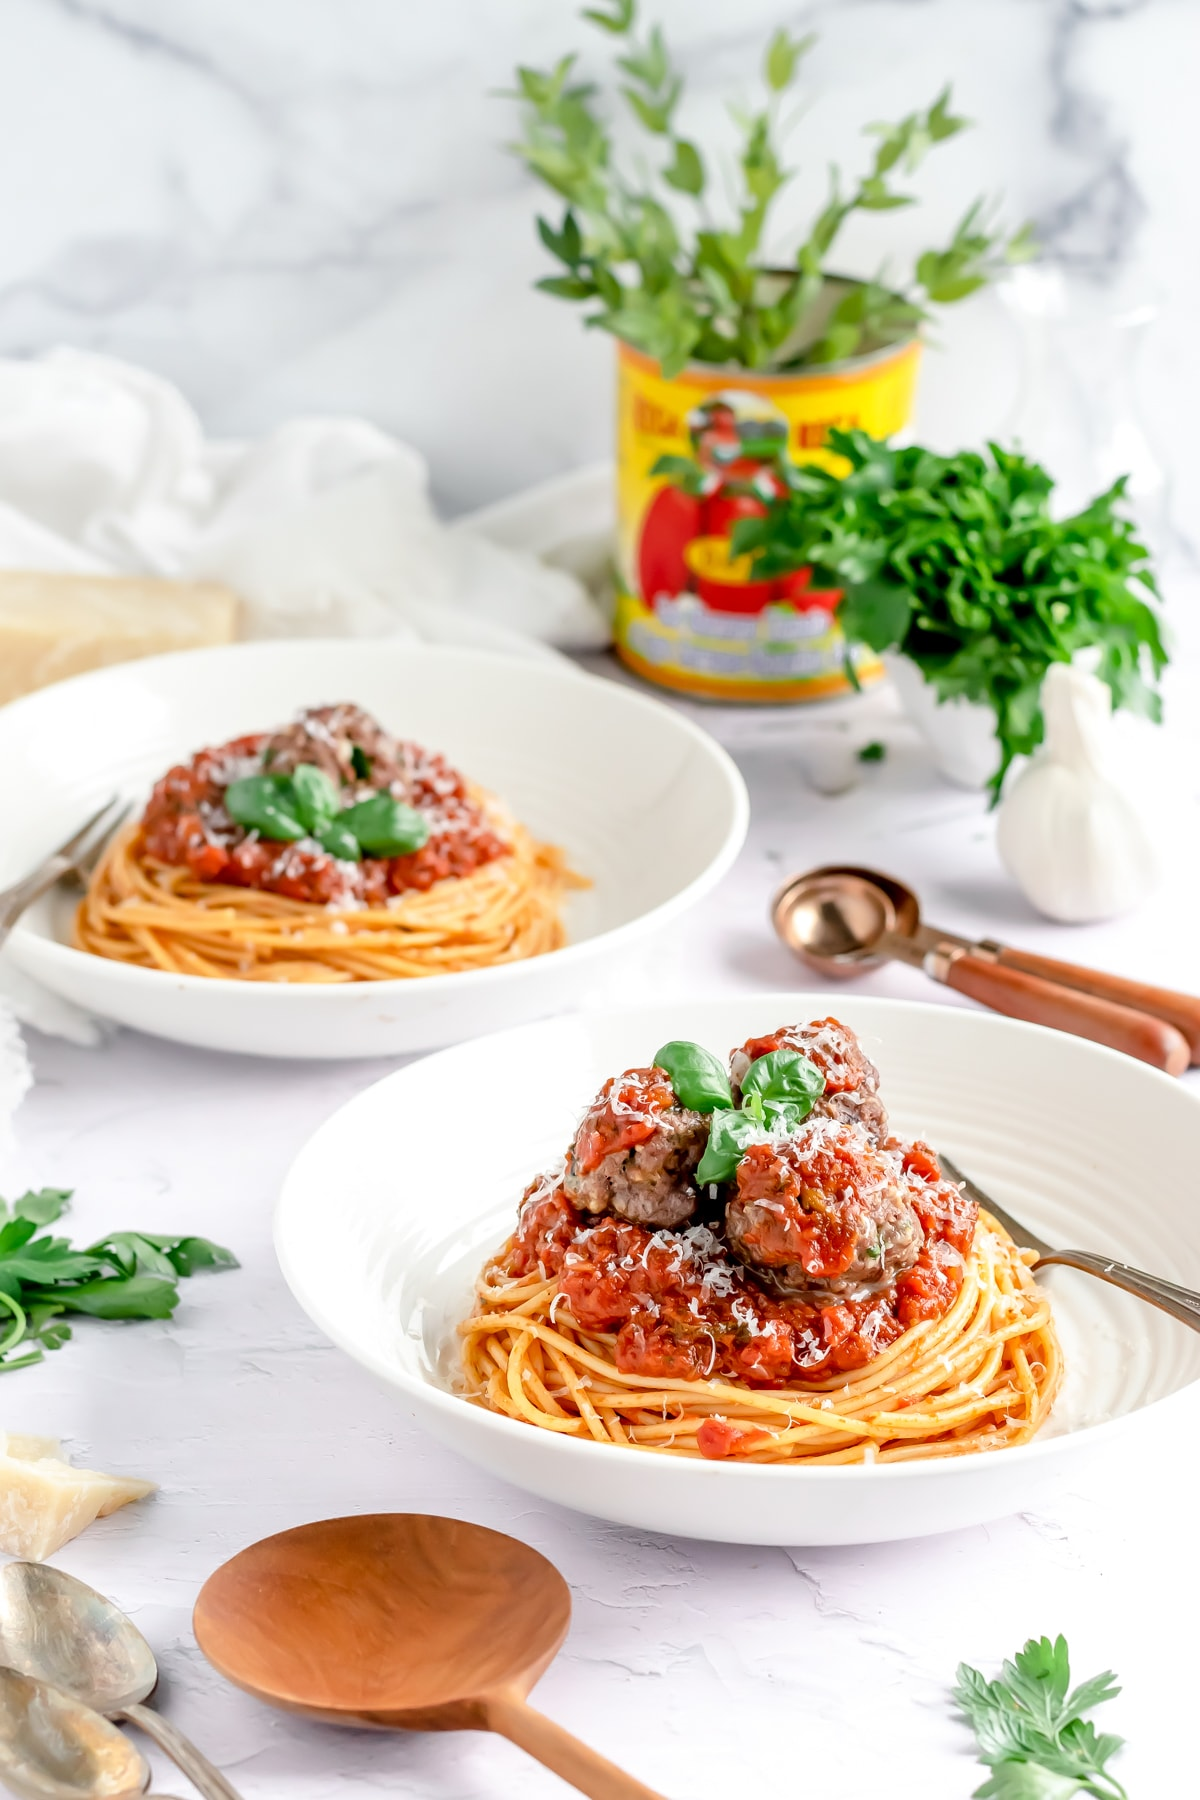 two bowls of spaghetti and meatballs